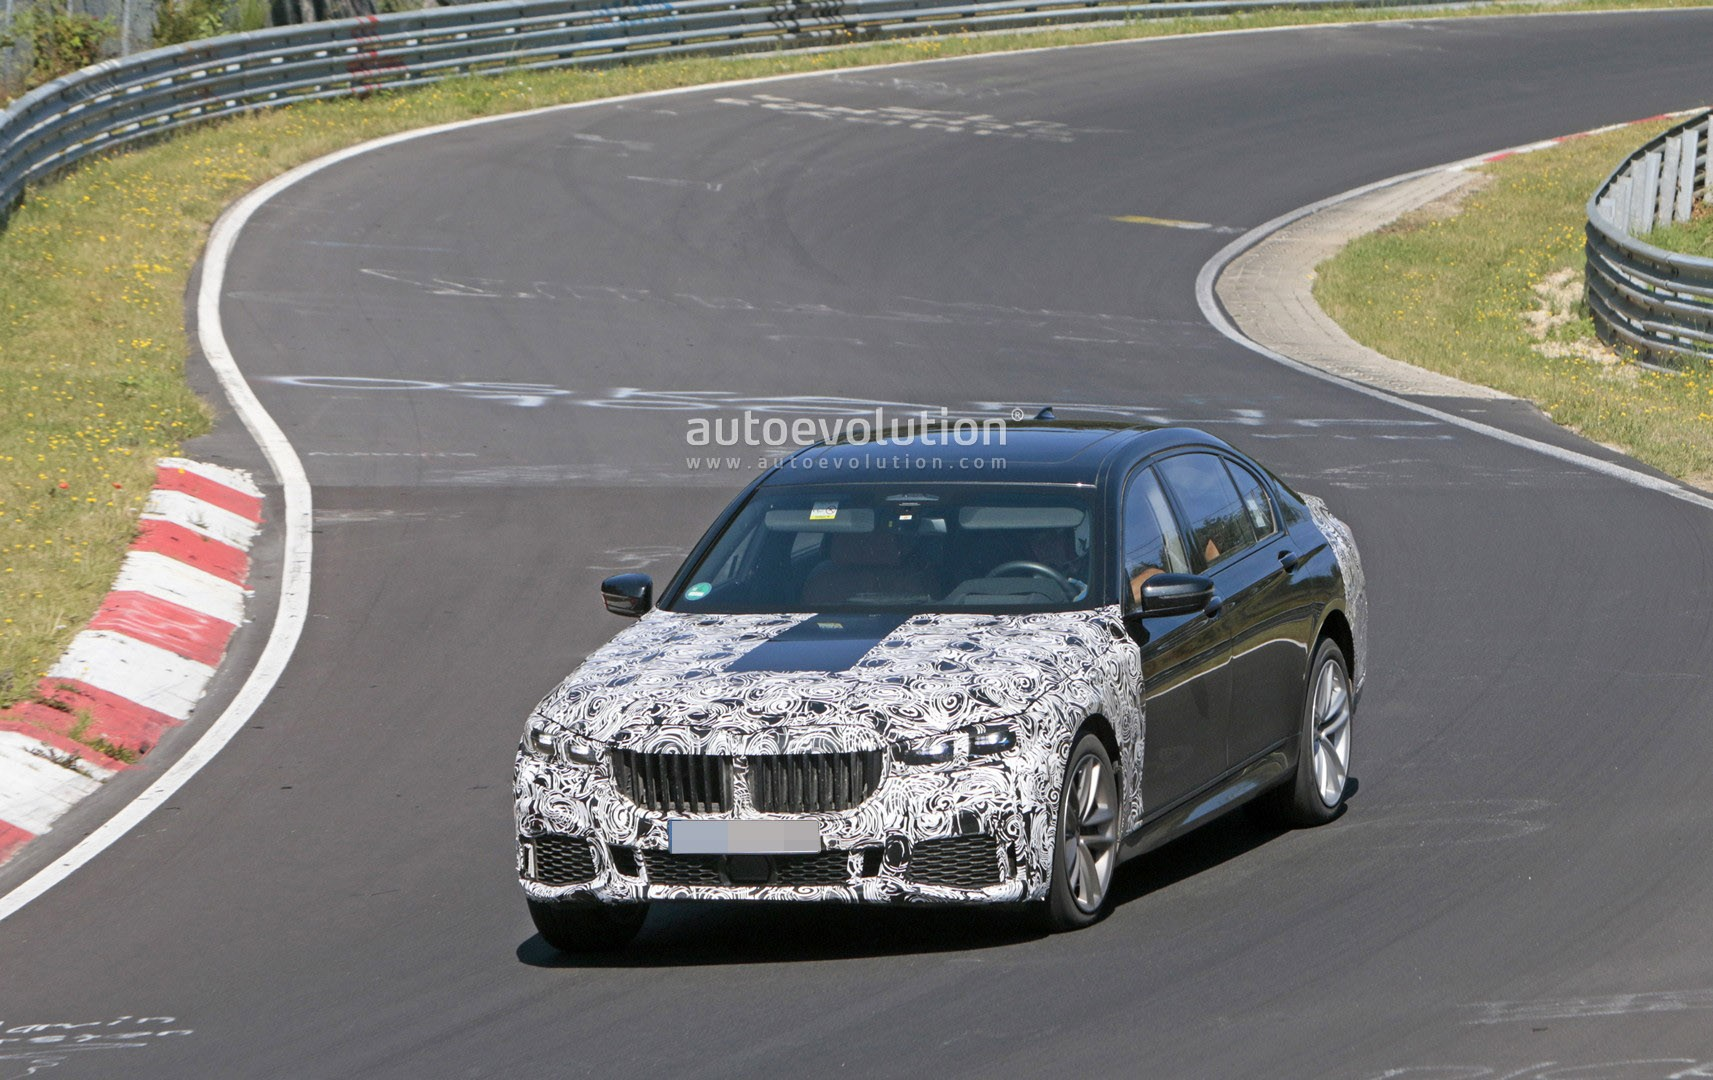 2020 Bmw 7 Series Shows M Sport Package At The Nurburgring